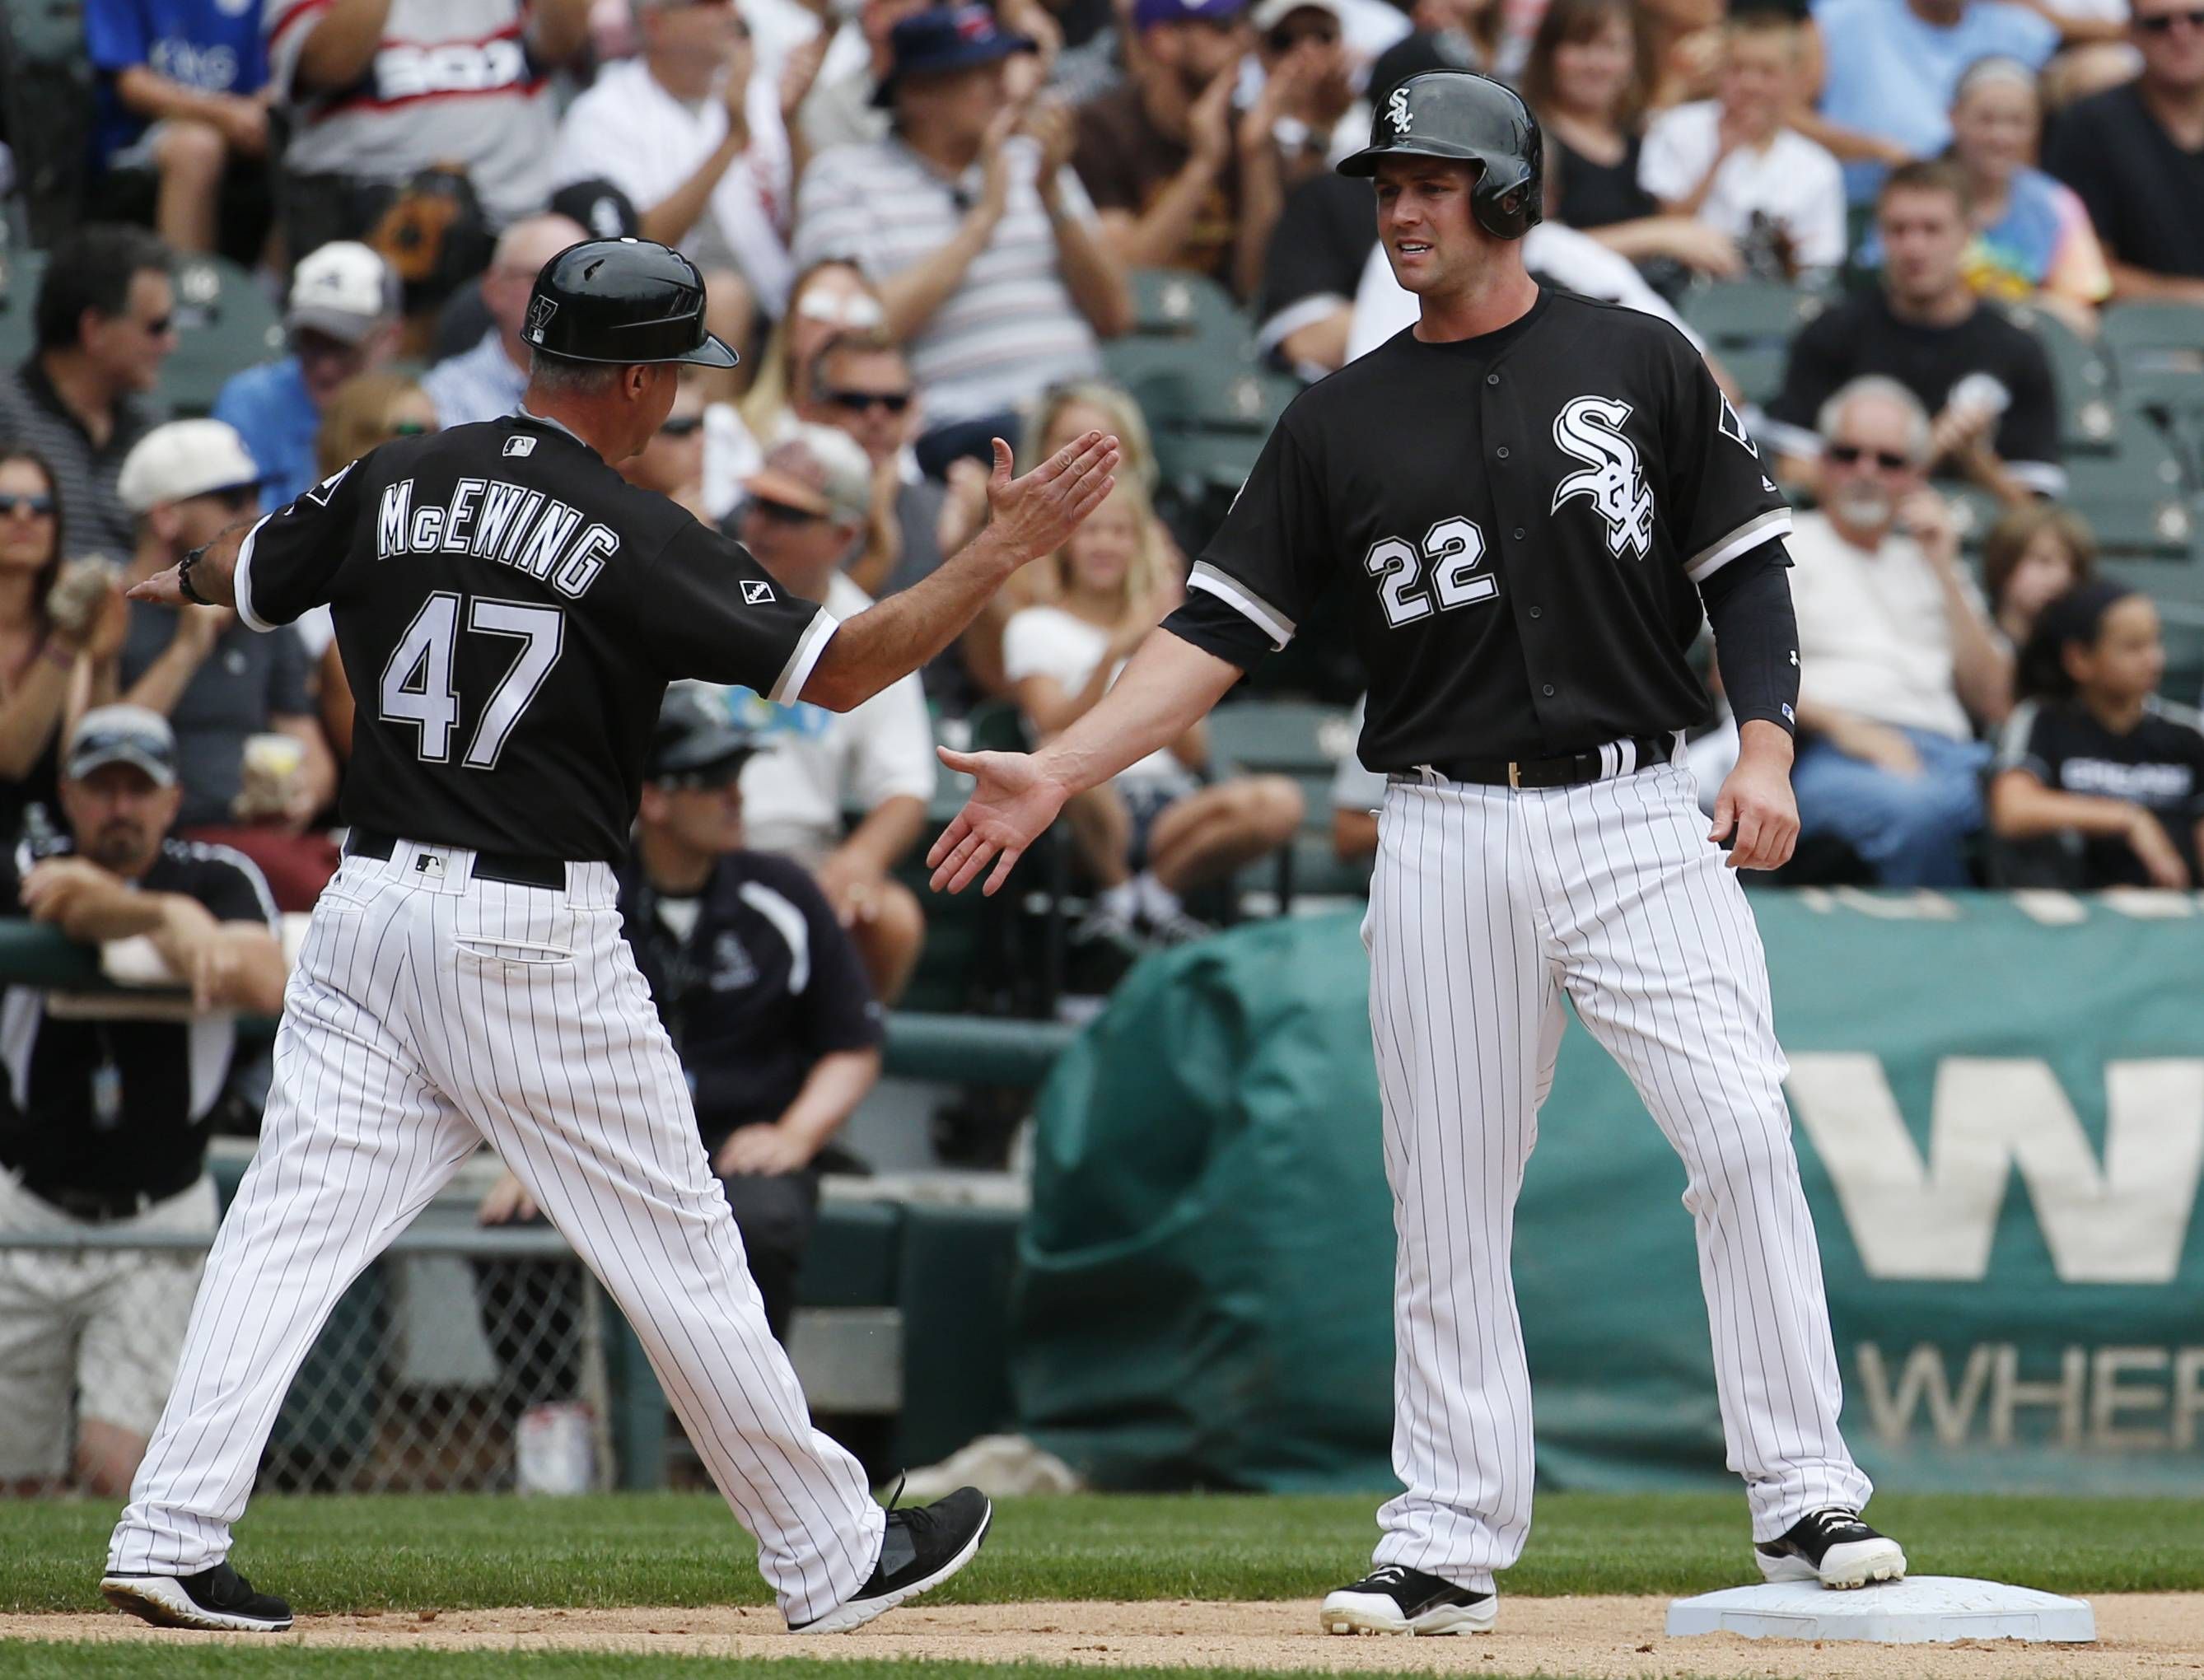 Chicago White Sox's Matt Davidson, right, celebrates with third base coach Joe McEwing as he arrives at third base after J.B. Shuck hit a double against the Minnesota Twins during the fourth inning of a baseball game in Chicago, Thursday, June 30, 2016.